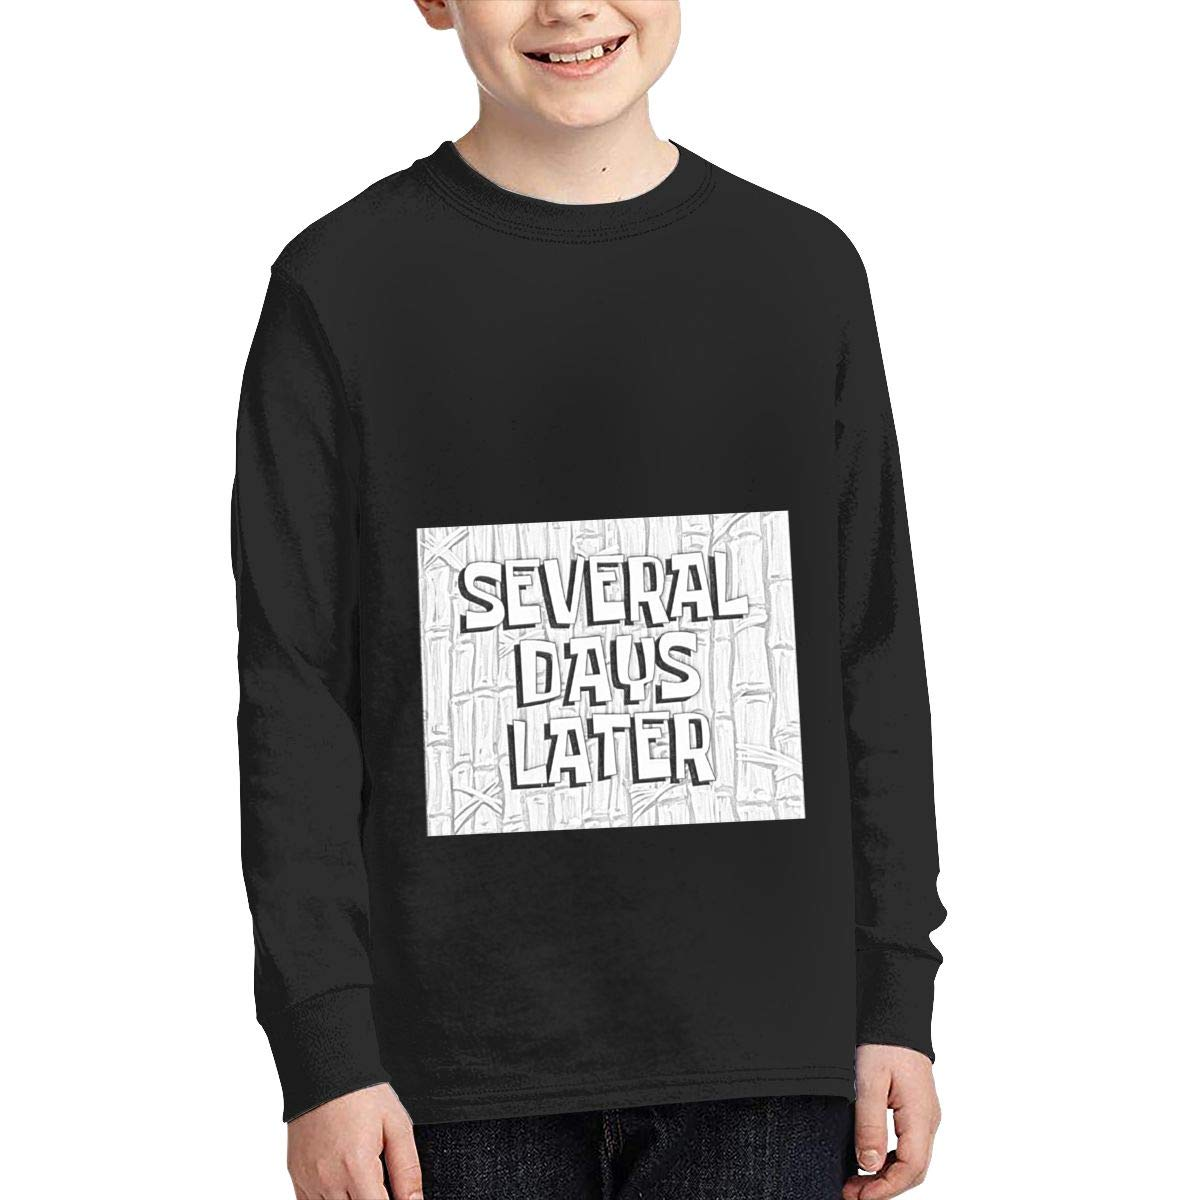 YOILLY Spongebob Time Passing Junior Long Sleeve T-Shirt Boys Long Sleeve Round Neck Graphic Tees Black